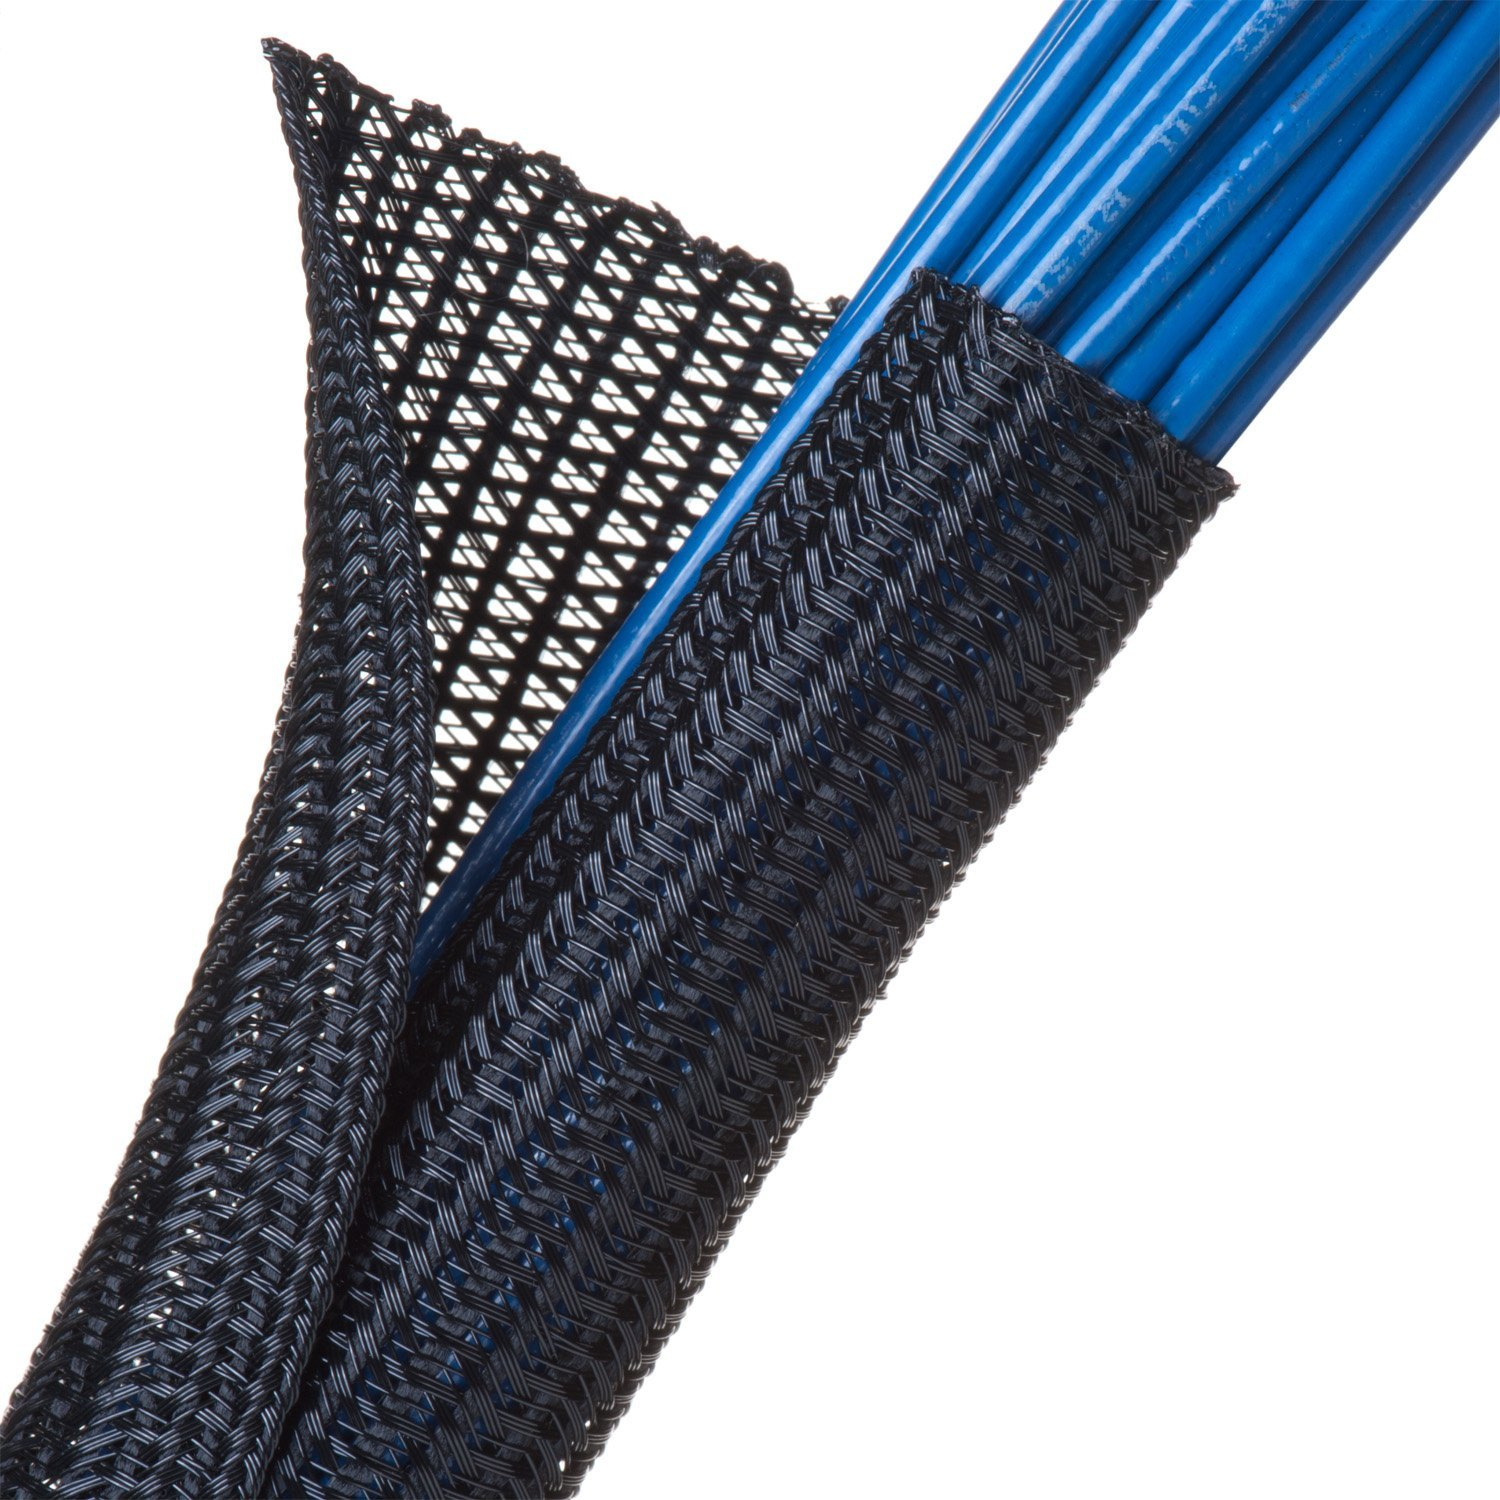 f6 – Self折り返しBraided Sleeving – 3 / 4